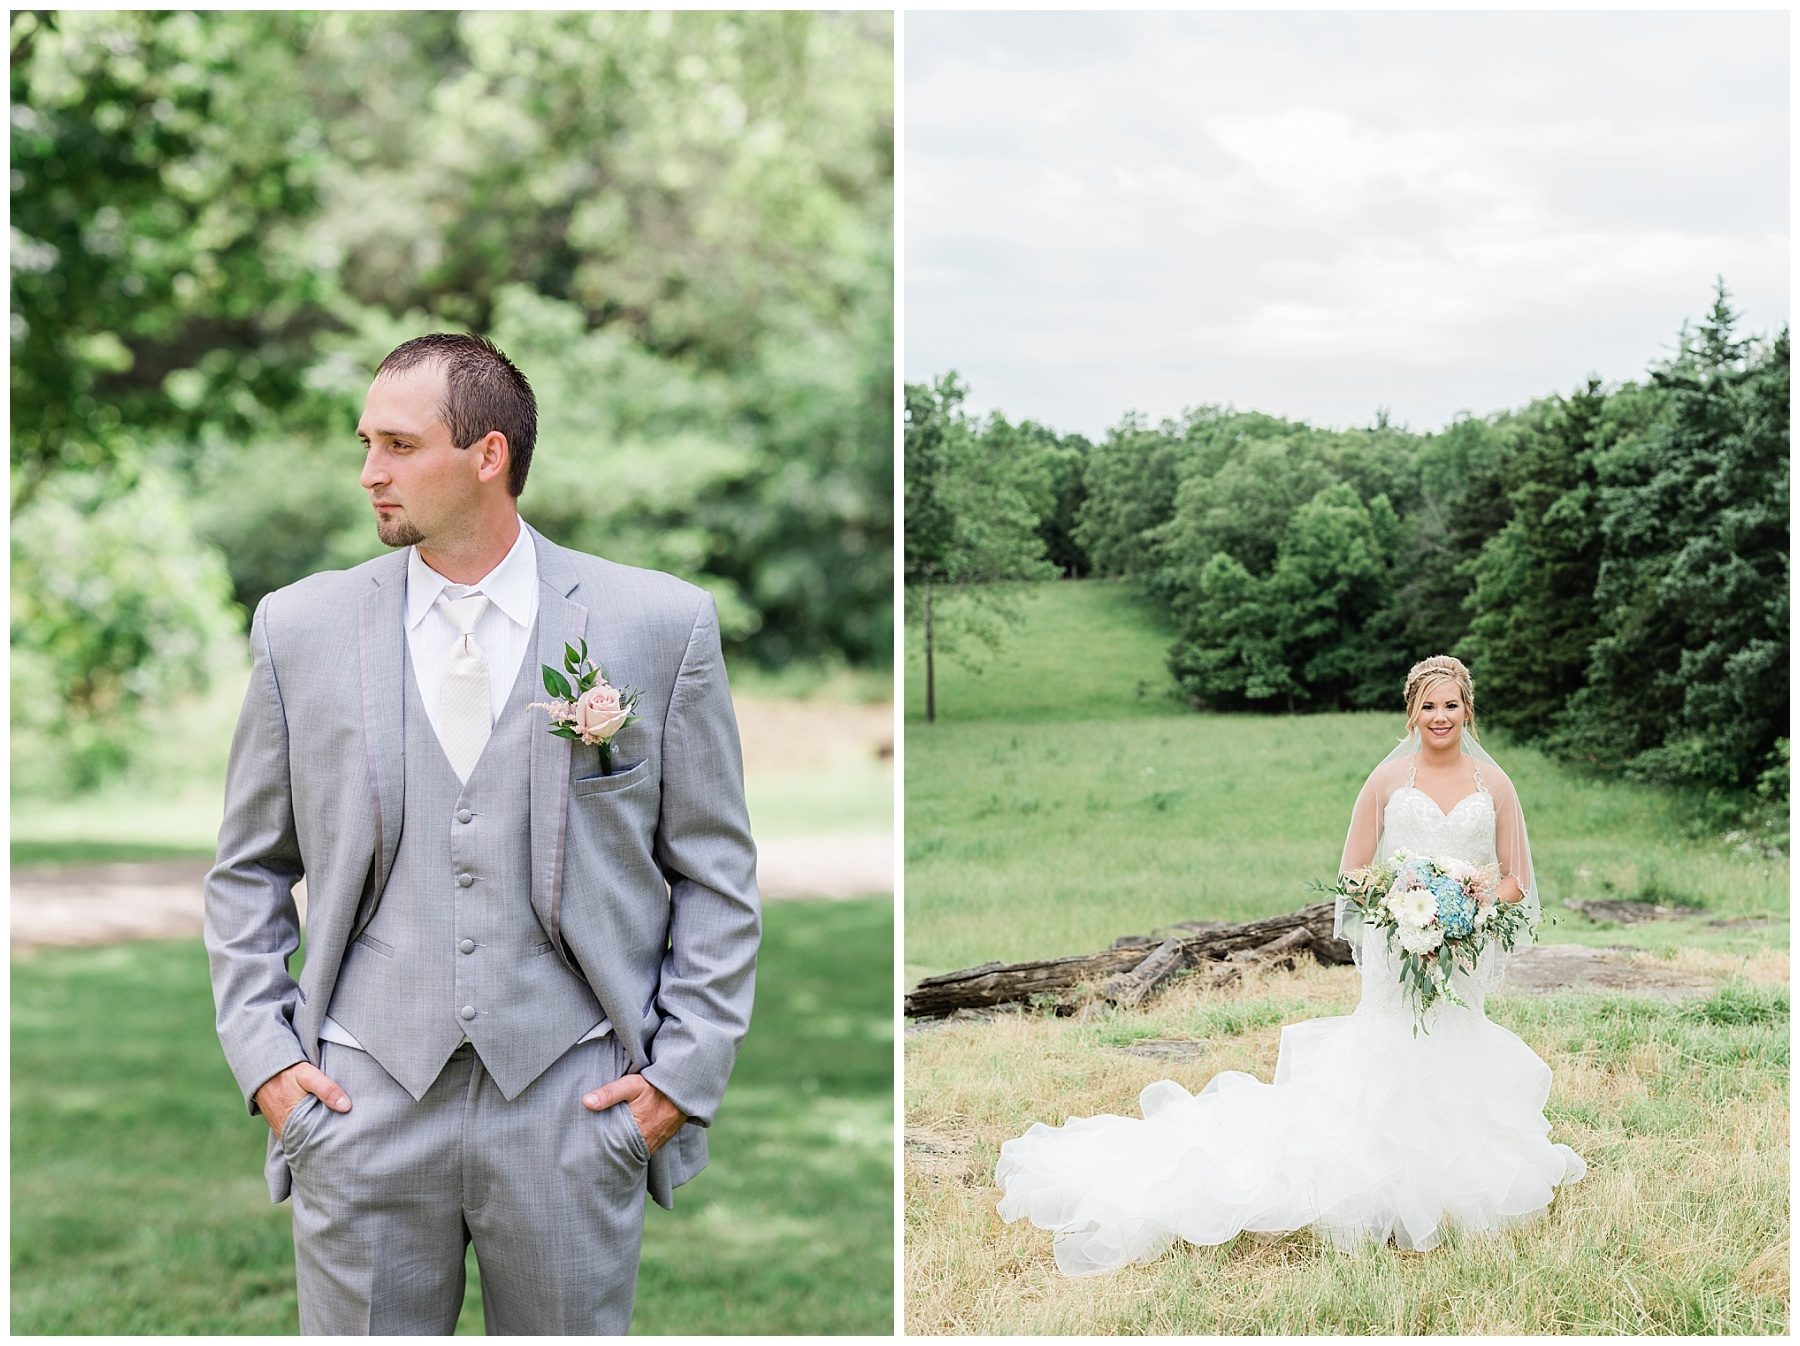 Sky Blue and Quartz Spring Wedding at Open Fields of Family Farm by Kelsi Kliethermes Photography Best Missouri and Maui Wedding Photographer_0037.jpg